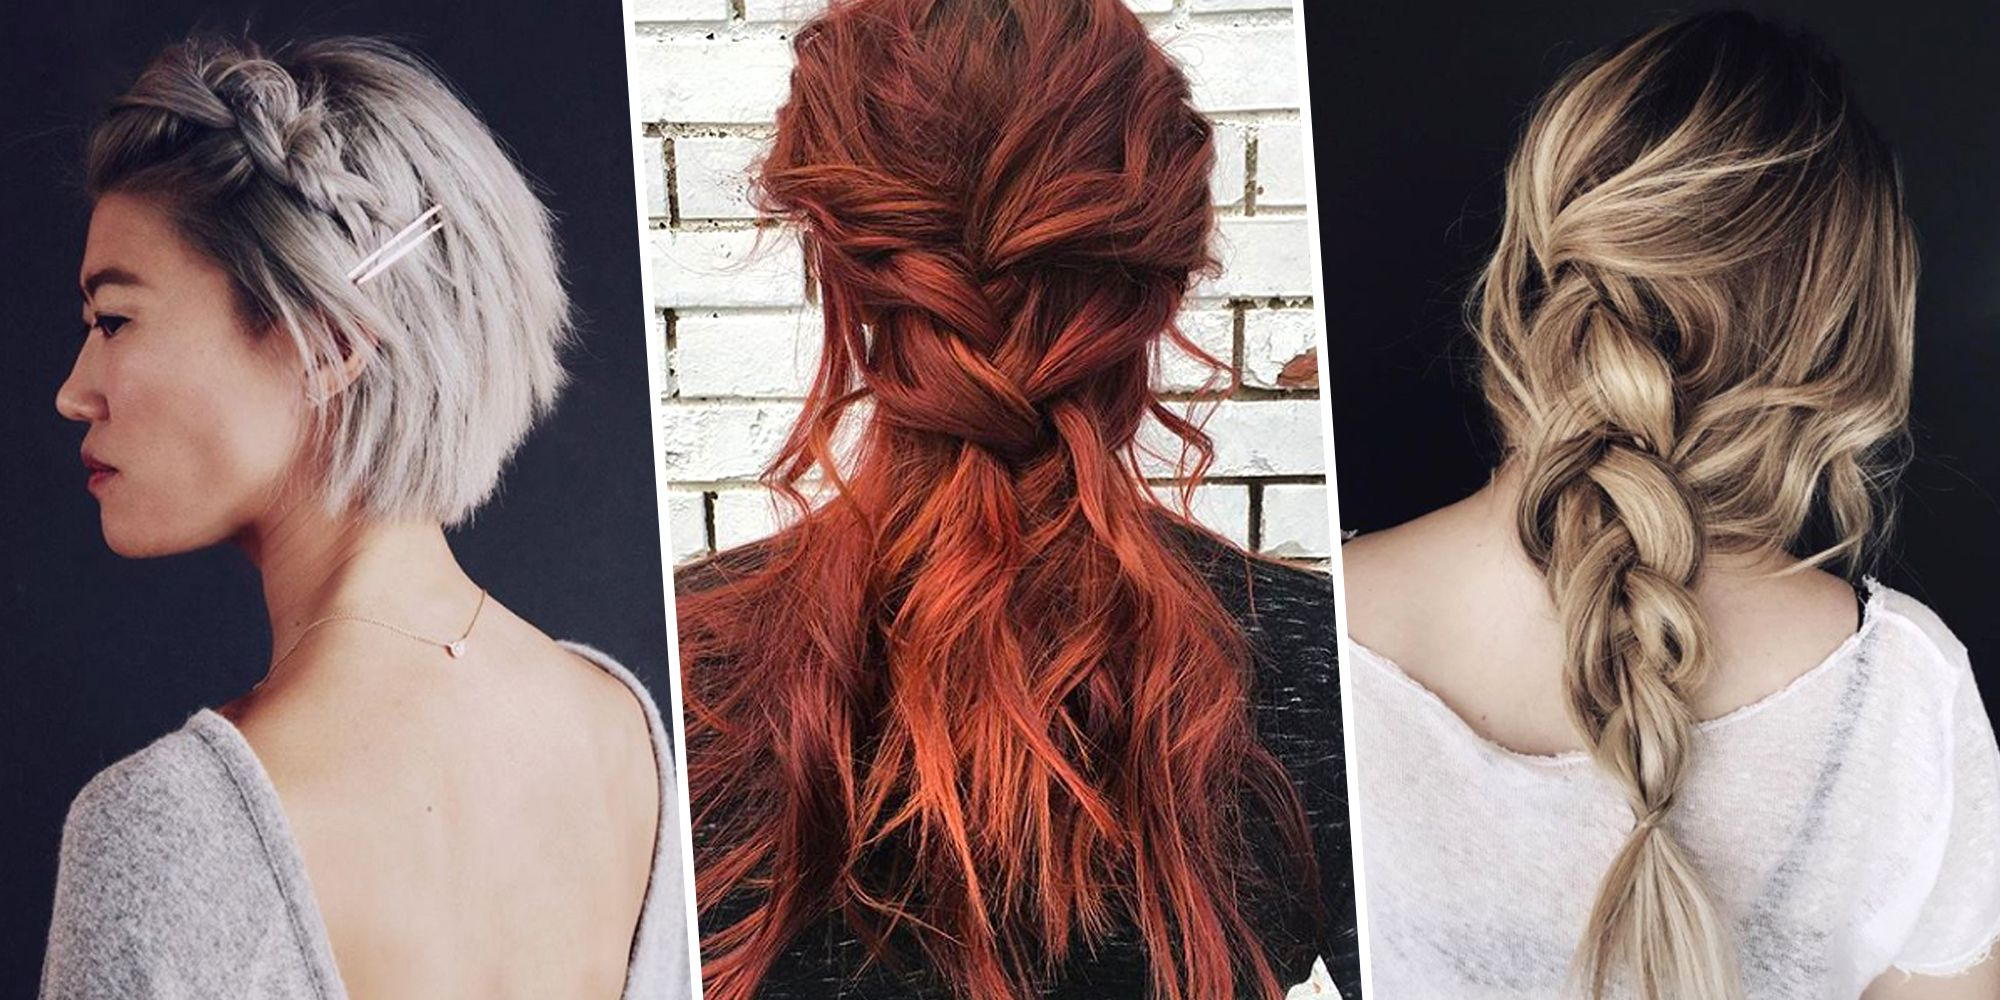 8 Messy, Easy Braid Ideas To Copy – Best Braided Hairstyles Regarding Fashionable Messy Crown Braided Hairstyles (View 18 of 20)